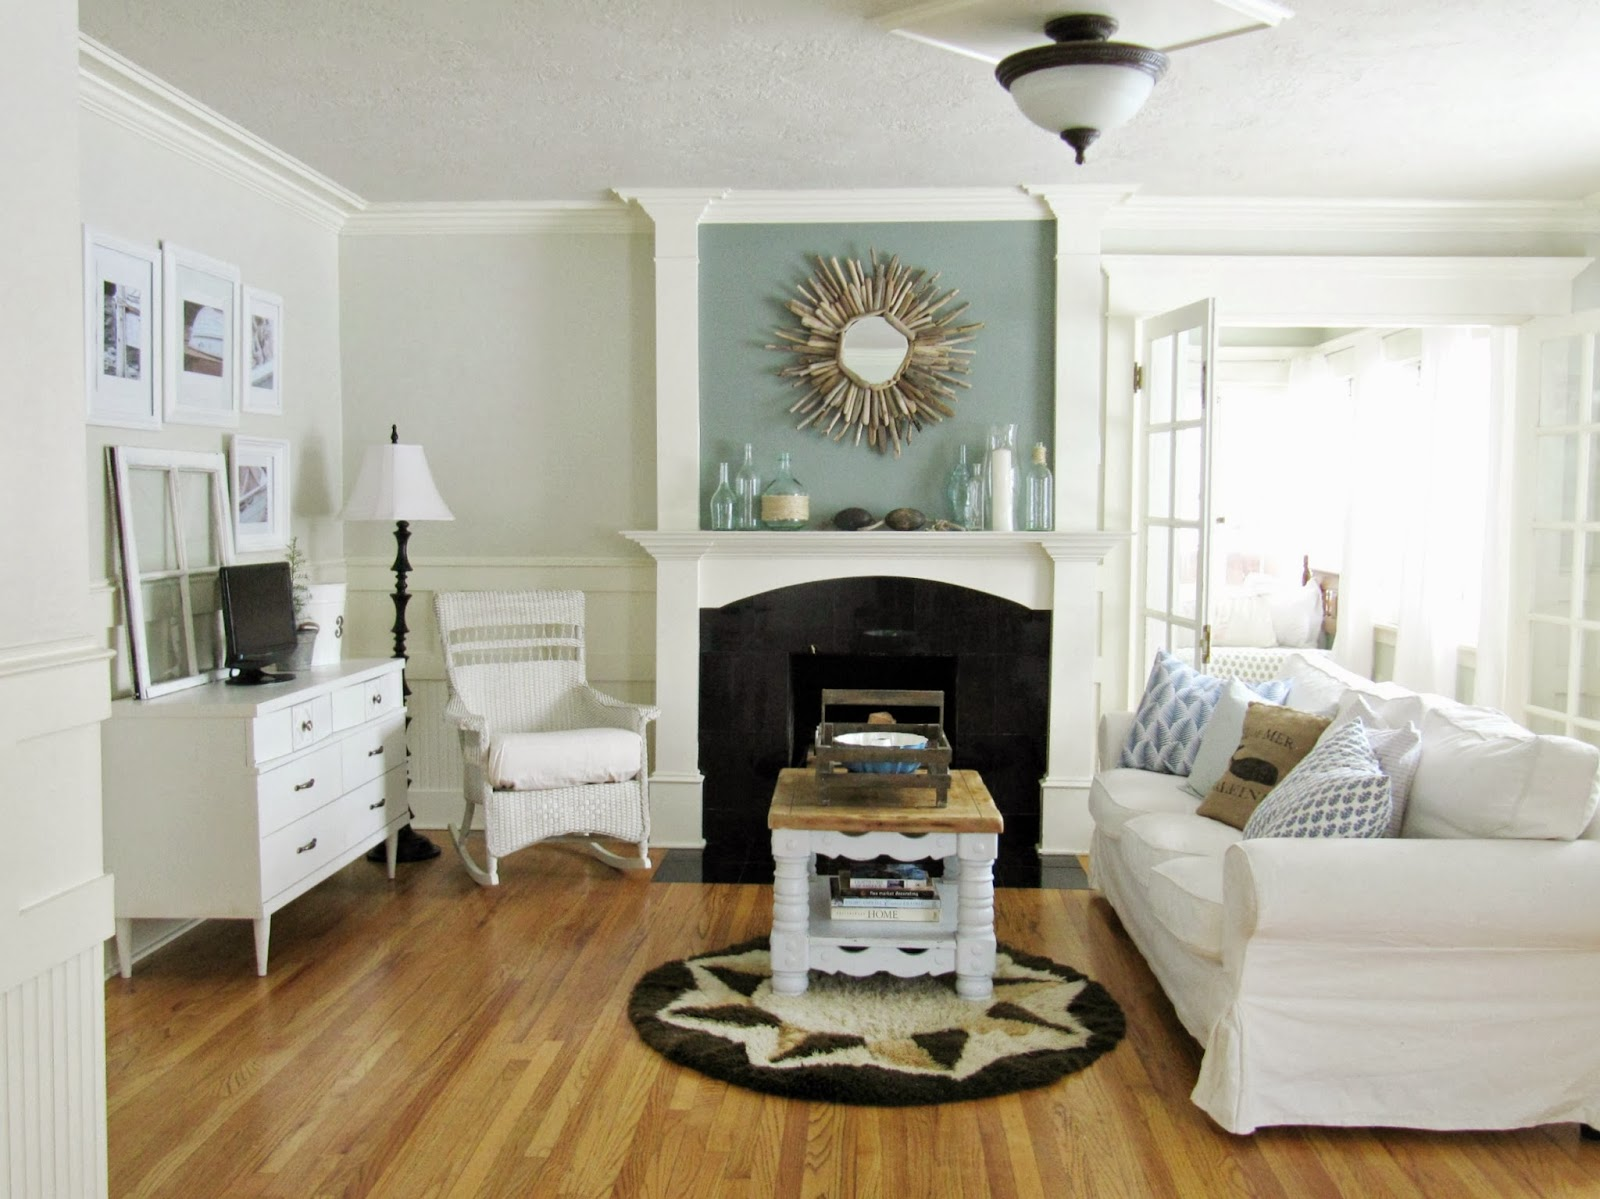 Living Room Reveal  The Wicker House. Types Of Floor Tiles For Living Room. Country French Living Rooms. Simple White Living Room. Hgtv Living Rooms Colors. Black Living Room Chairs. Living Room Small Spaces. End Table Living Room. Fresh Prince Of Bel Air Living Room